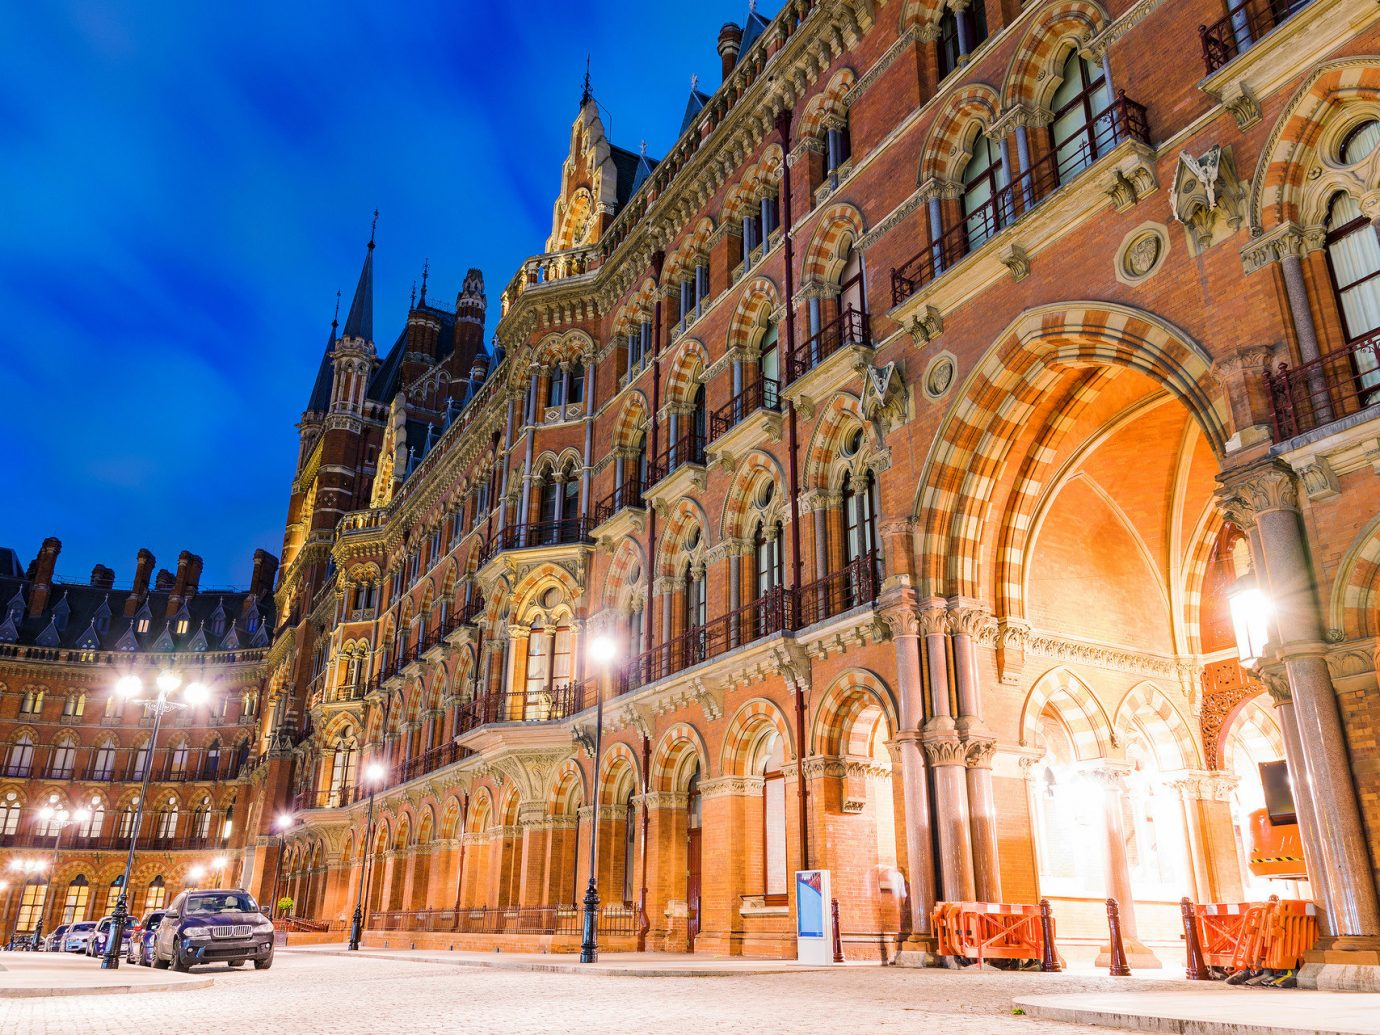 Trip Ideas building outdoor historic site landmark Town place of worship plaza cathedral facade palace Church basilica monastery gothic architecture